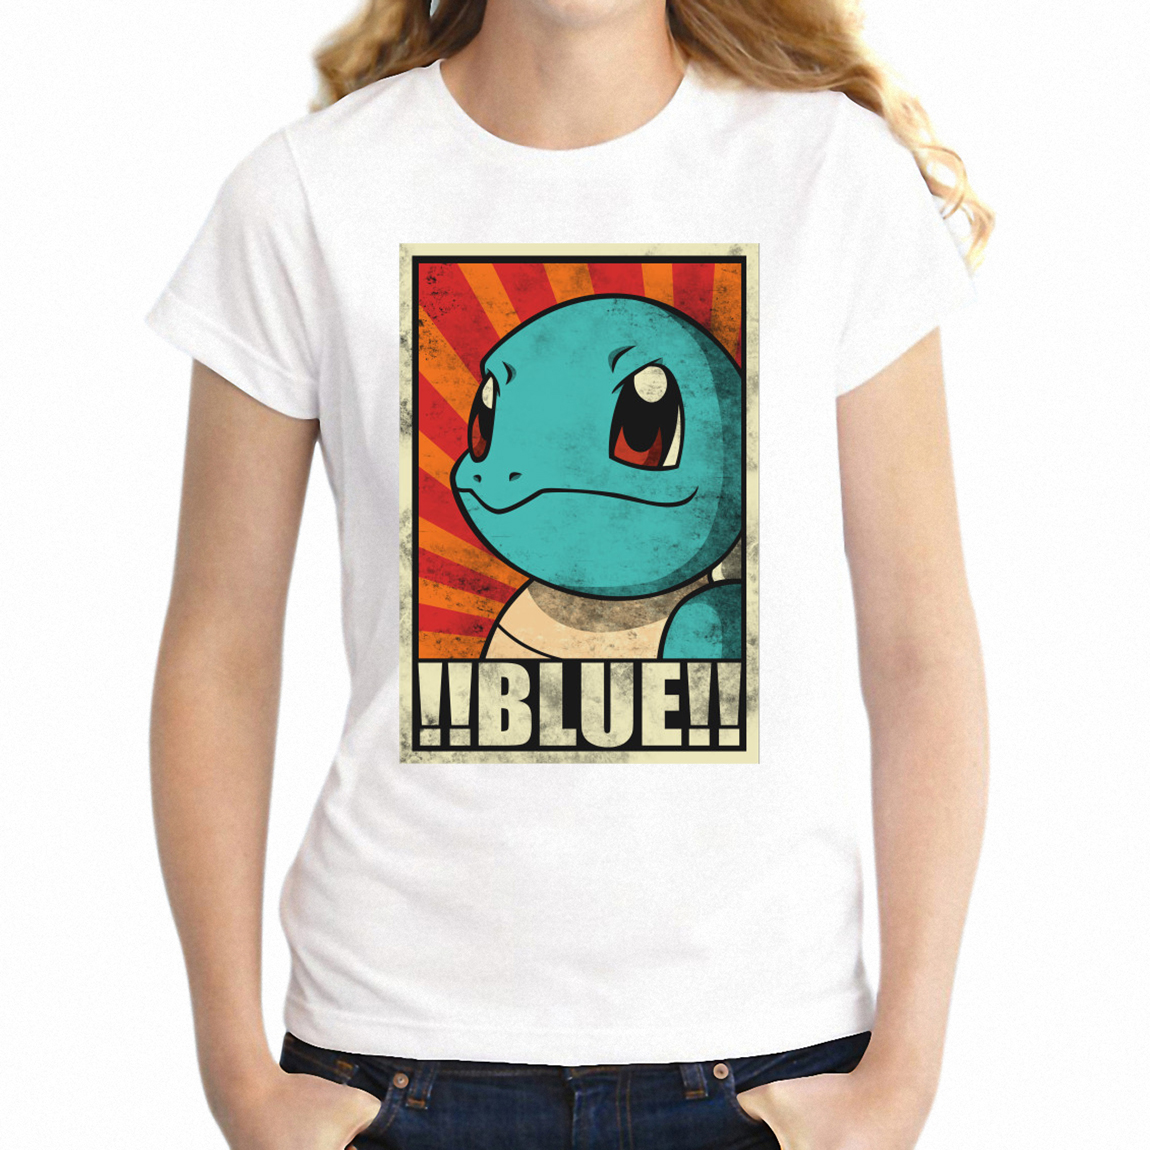 women's-t-shirt-font-b-pokemon-b-font-squirtle-charmander-bulbasaur-funny-crossover-awesome-drawing-girl's-tshirt-harajuku-hip-hop-tees-tops